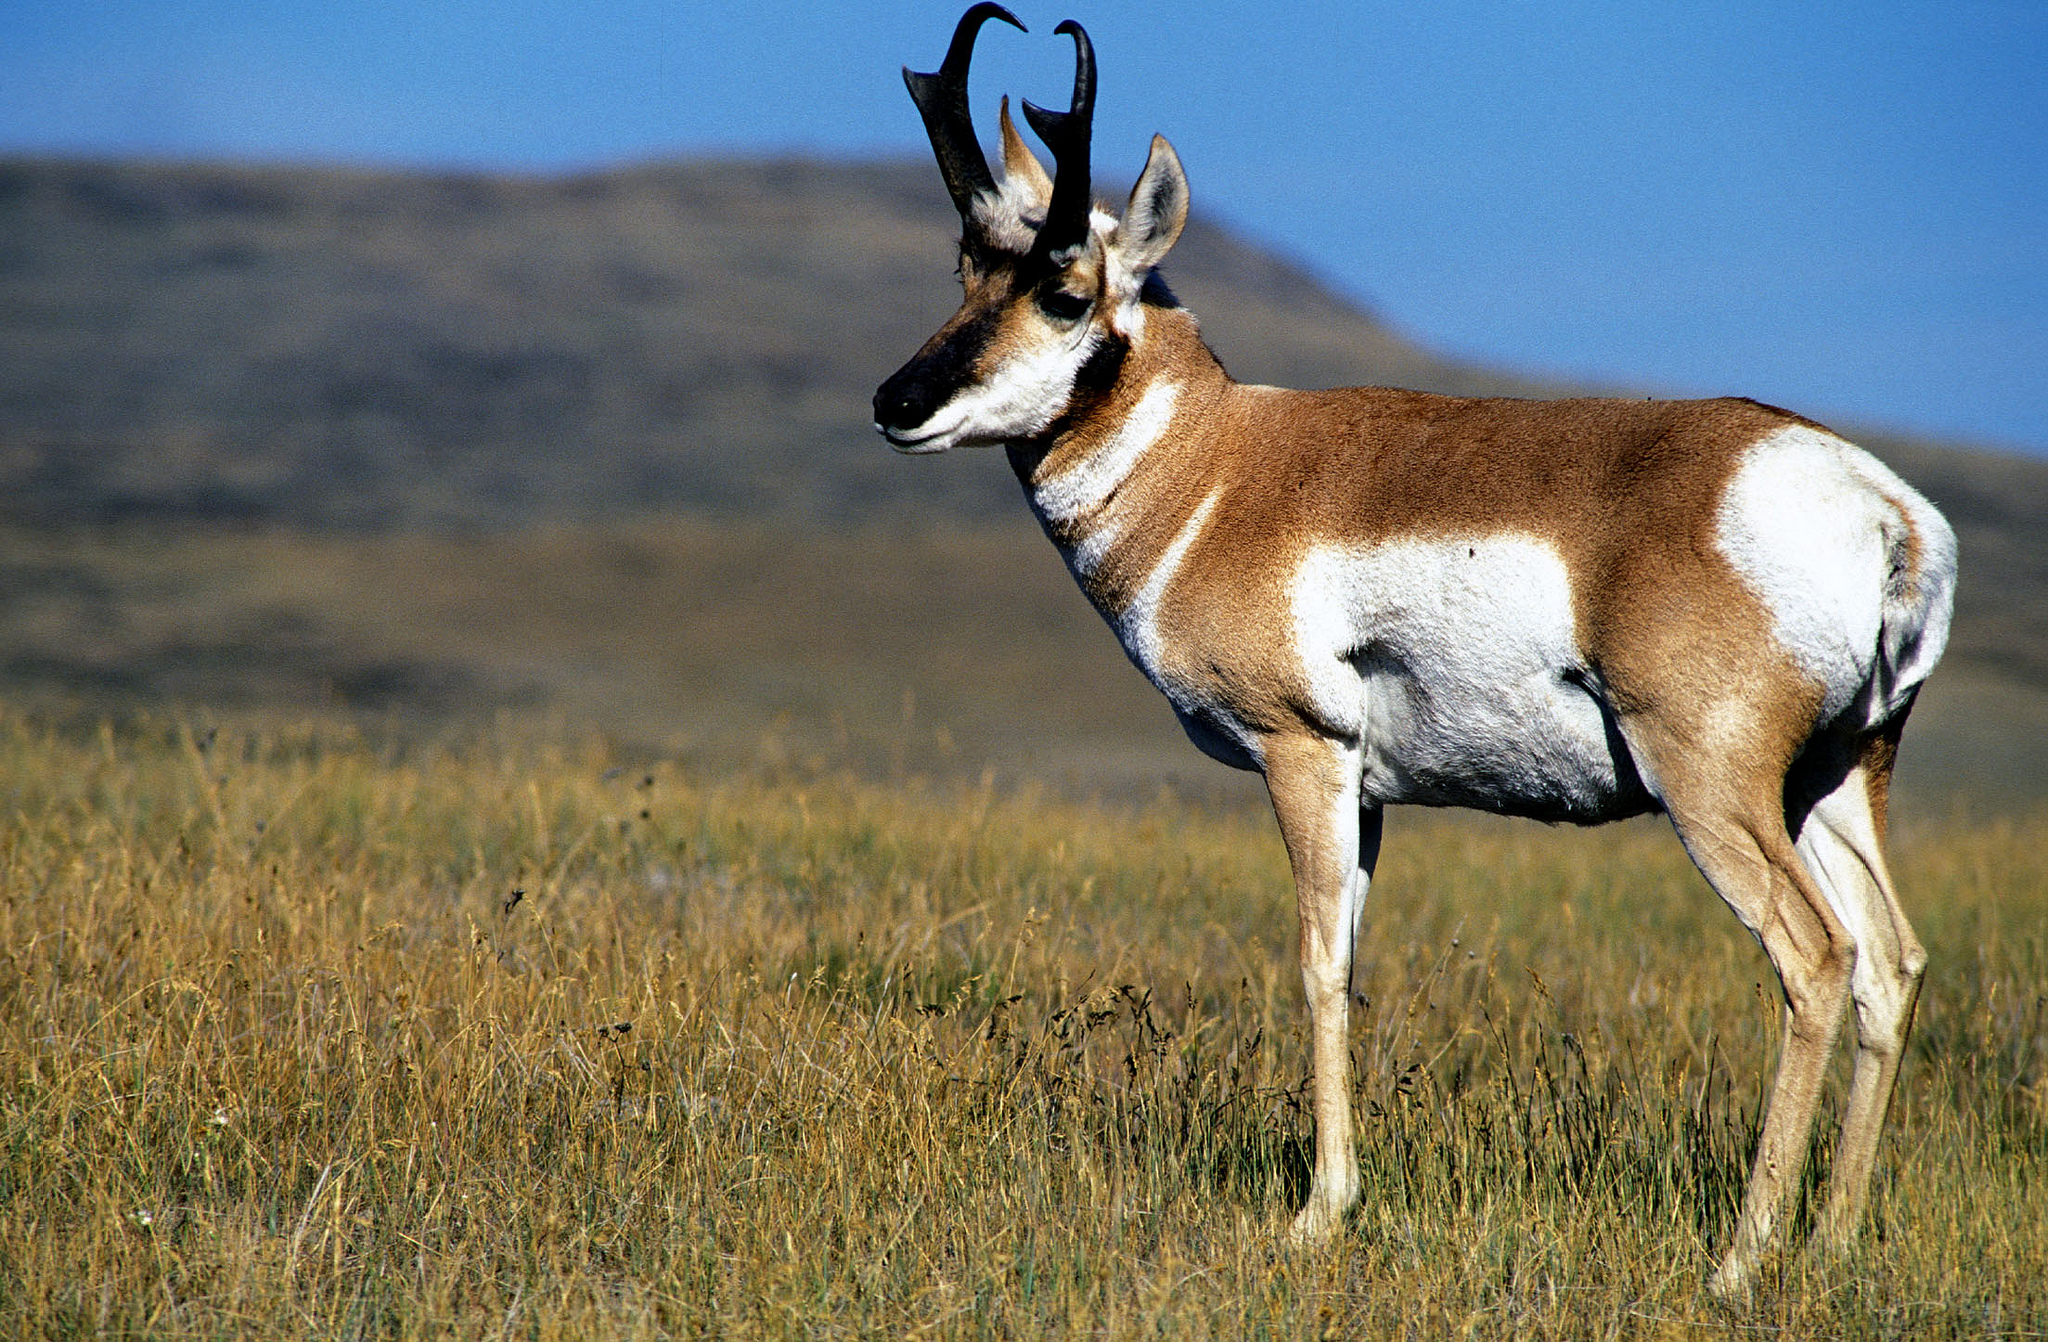 CMR National Wildlife Refuge was established, in part, for pronghorn antelope. Credit: USFWS.